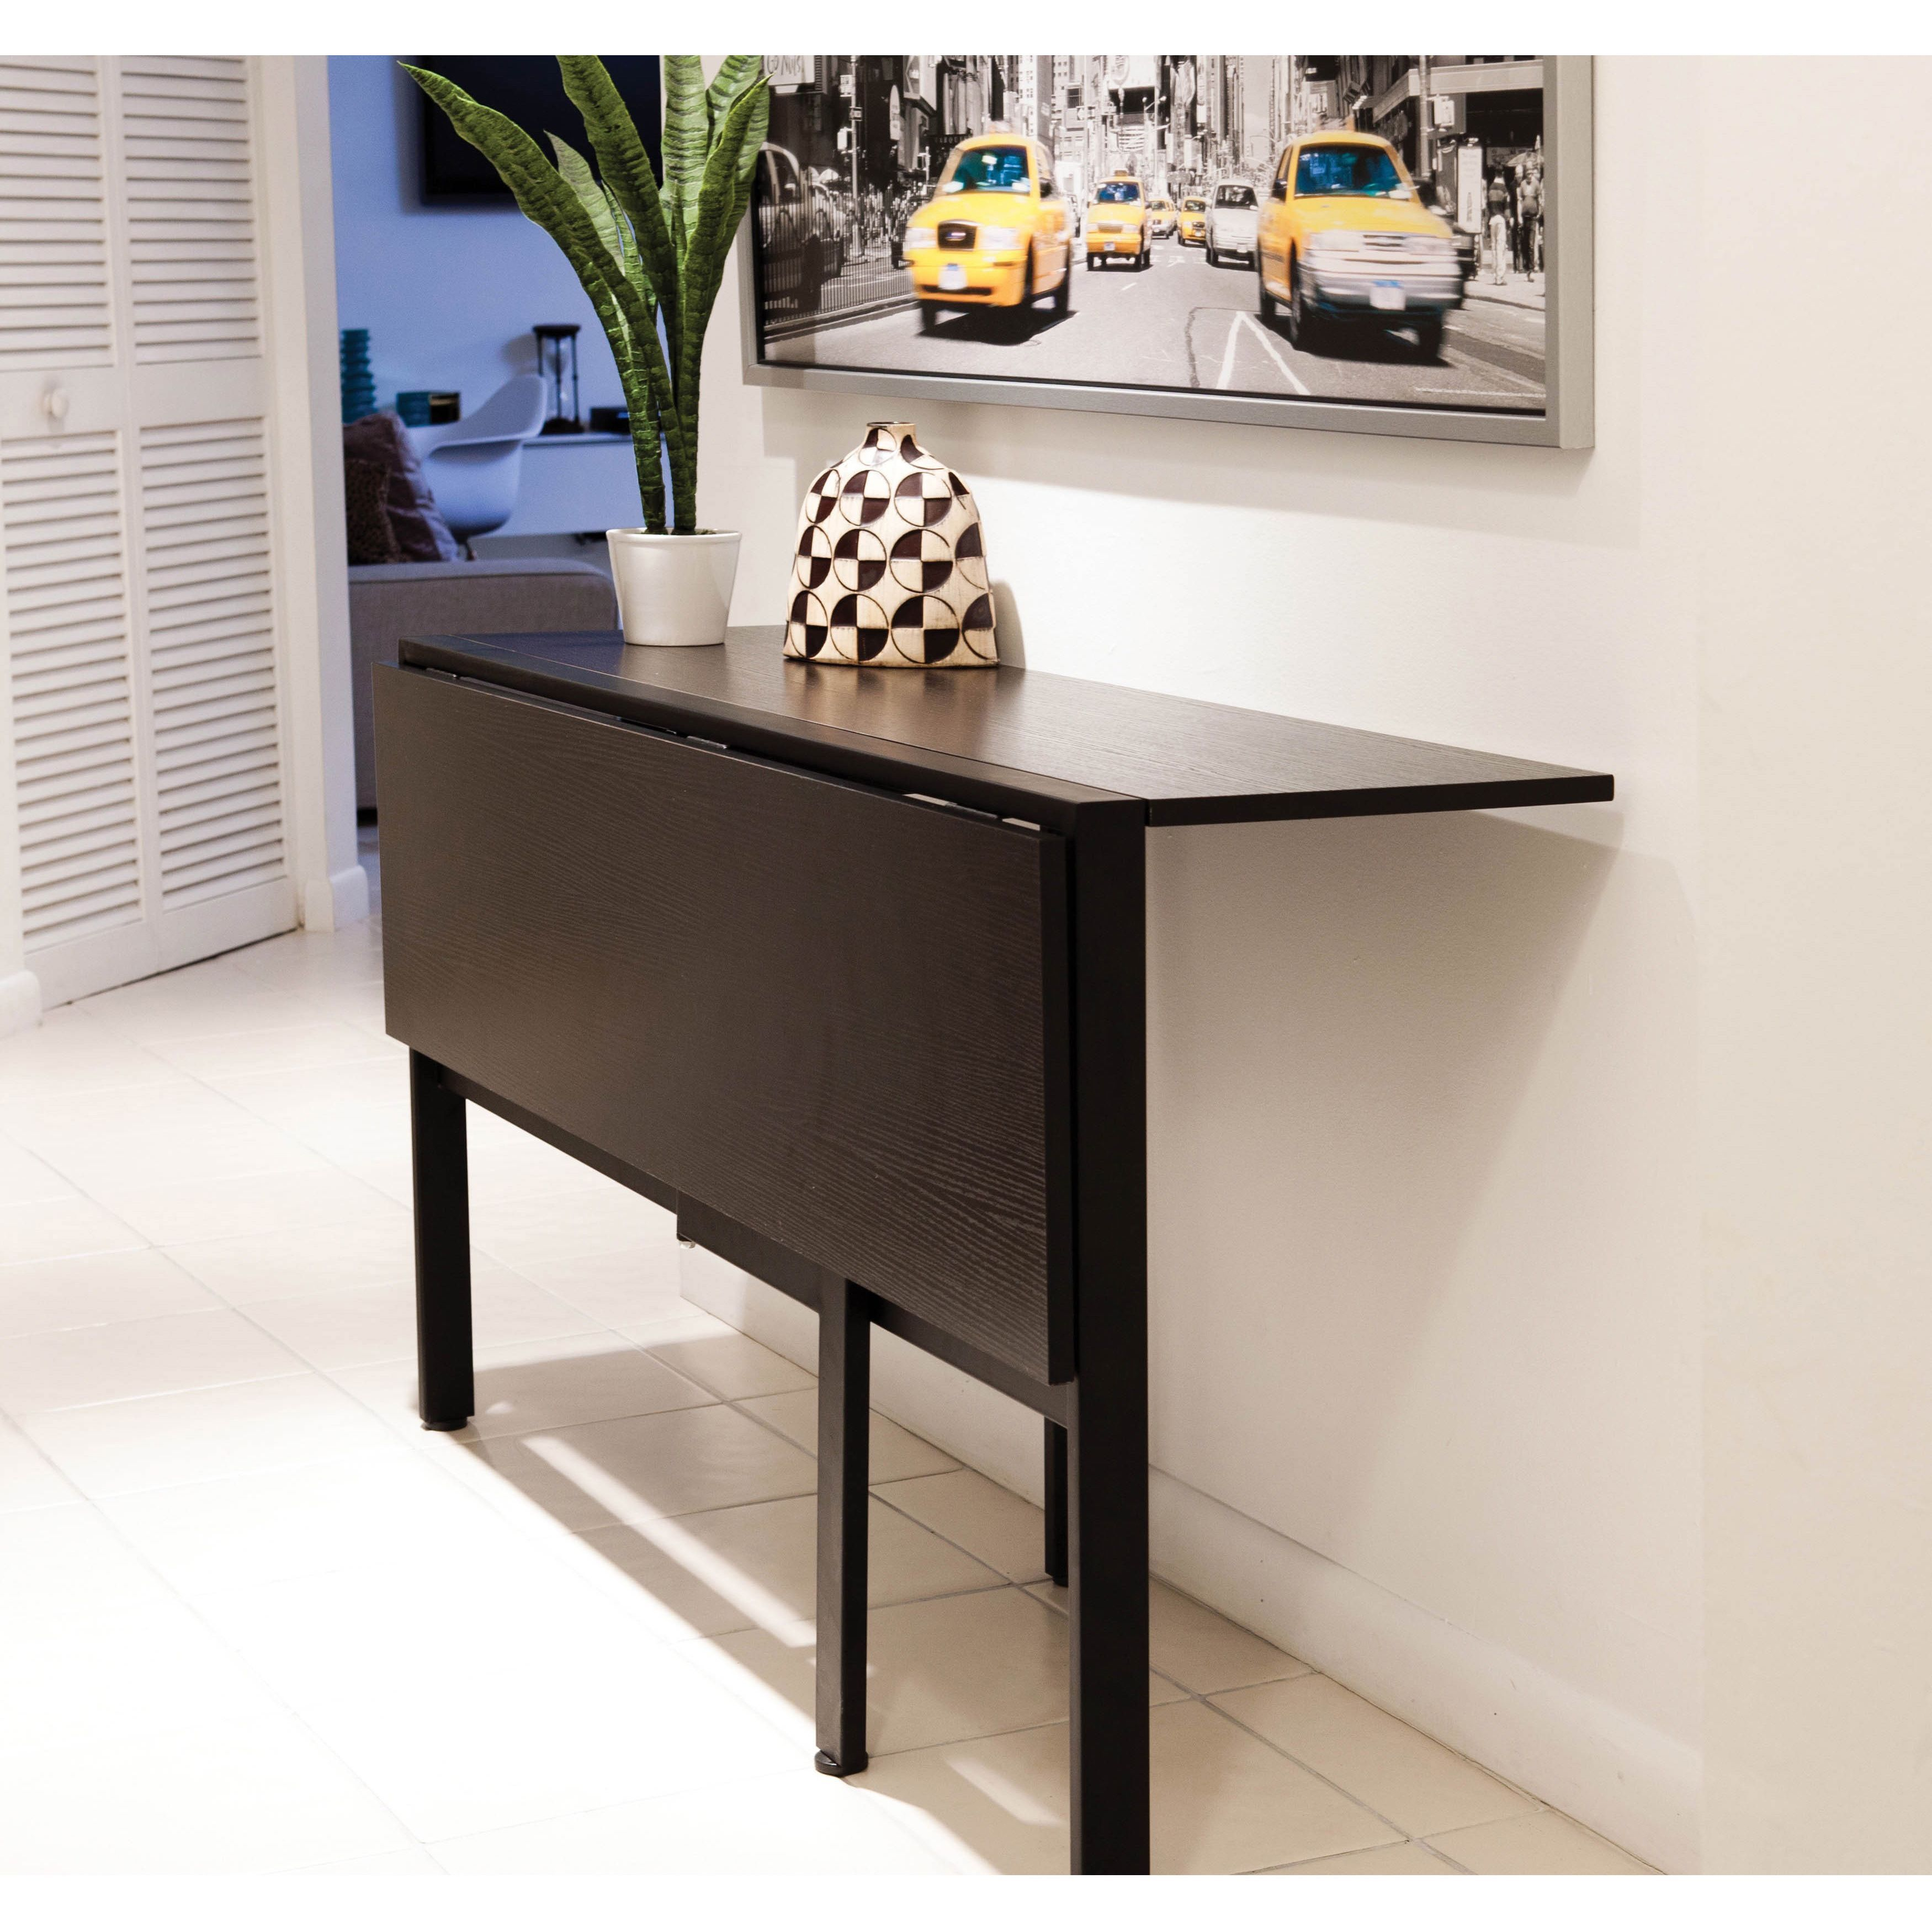 Overstock Com Online Shopping Bedding Furniture Electronics Jewelry Clothing More In 2021 Rectangle Dining Table Folding Dining Table Small Dining Table